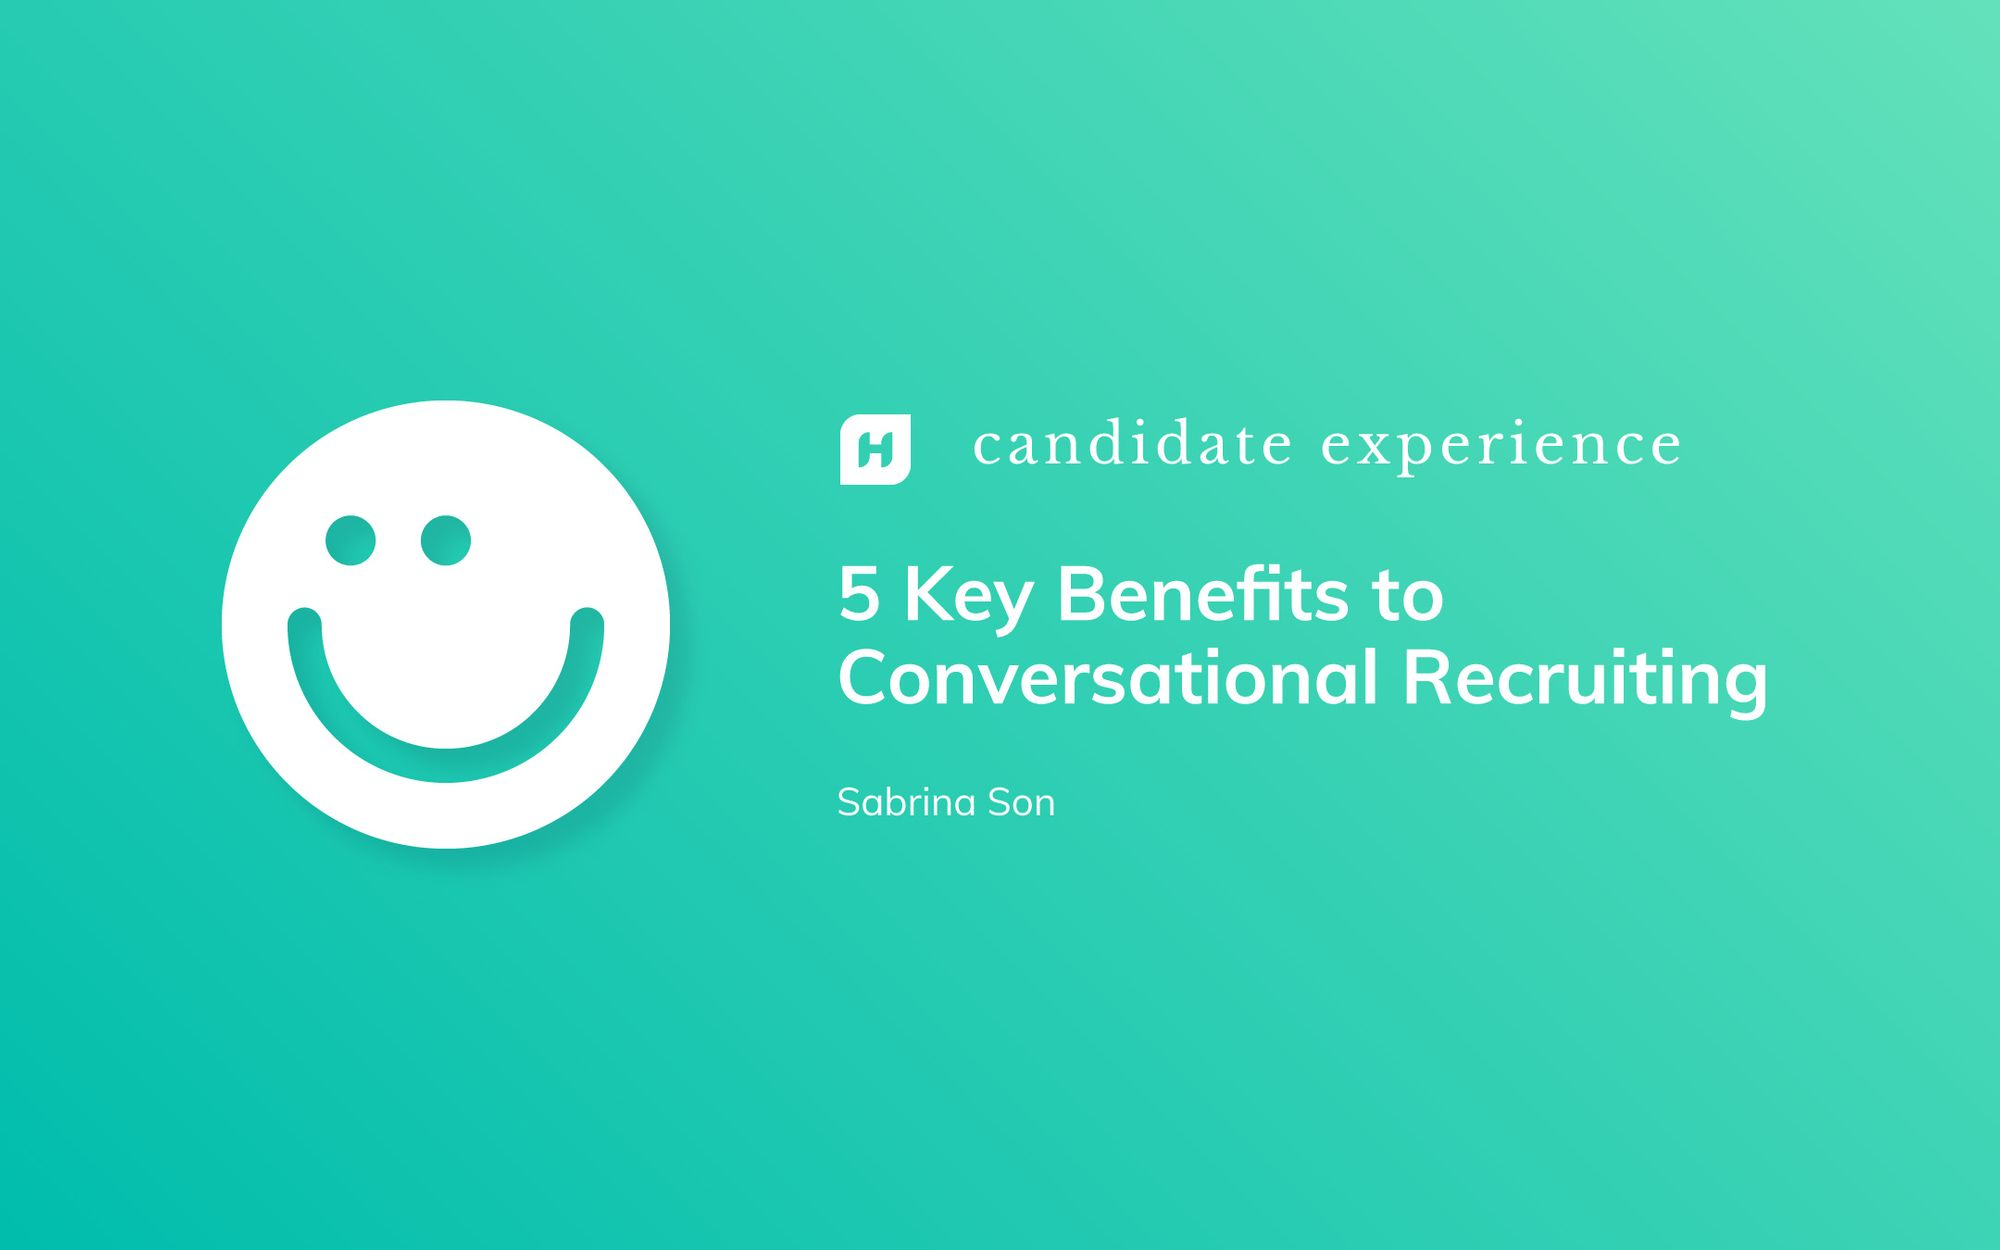 5 Key Benefits to Conversational Recruiting